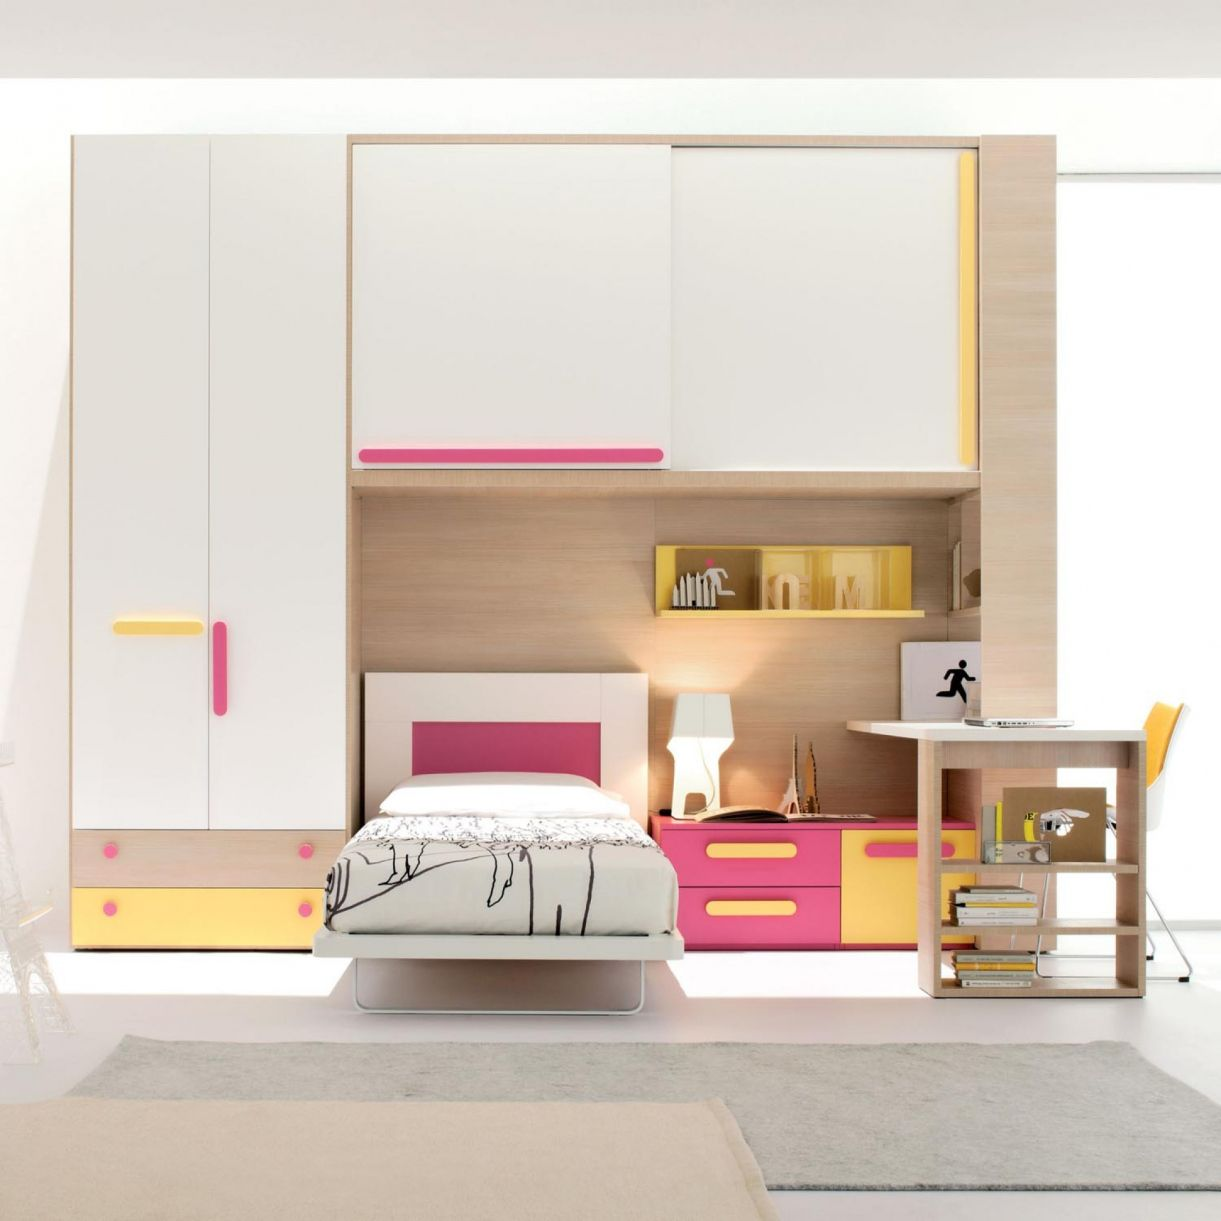 Attractive Space Saving Childrens Bedroom Furniture   Interior Design Bedroom Ideas On  A Budget Check More At. Bedroom Sets For GirlsKid ...